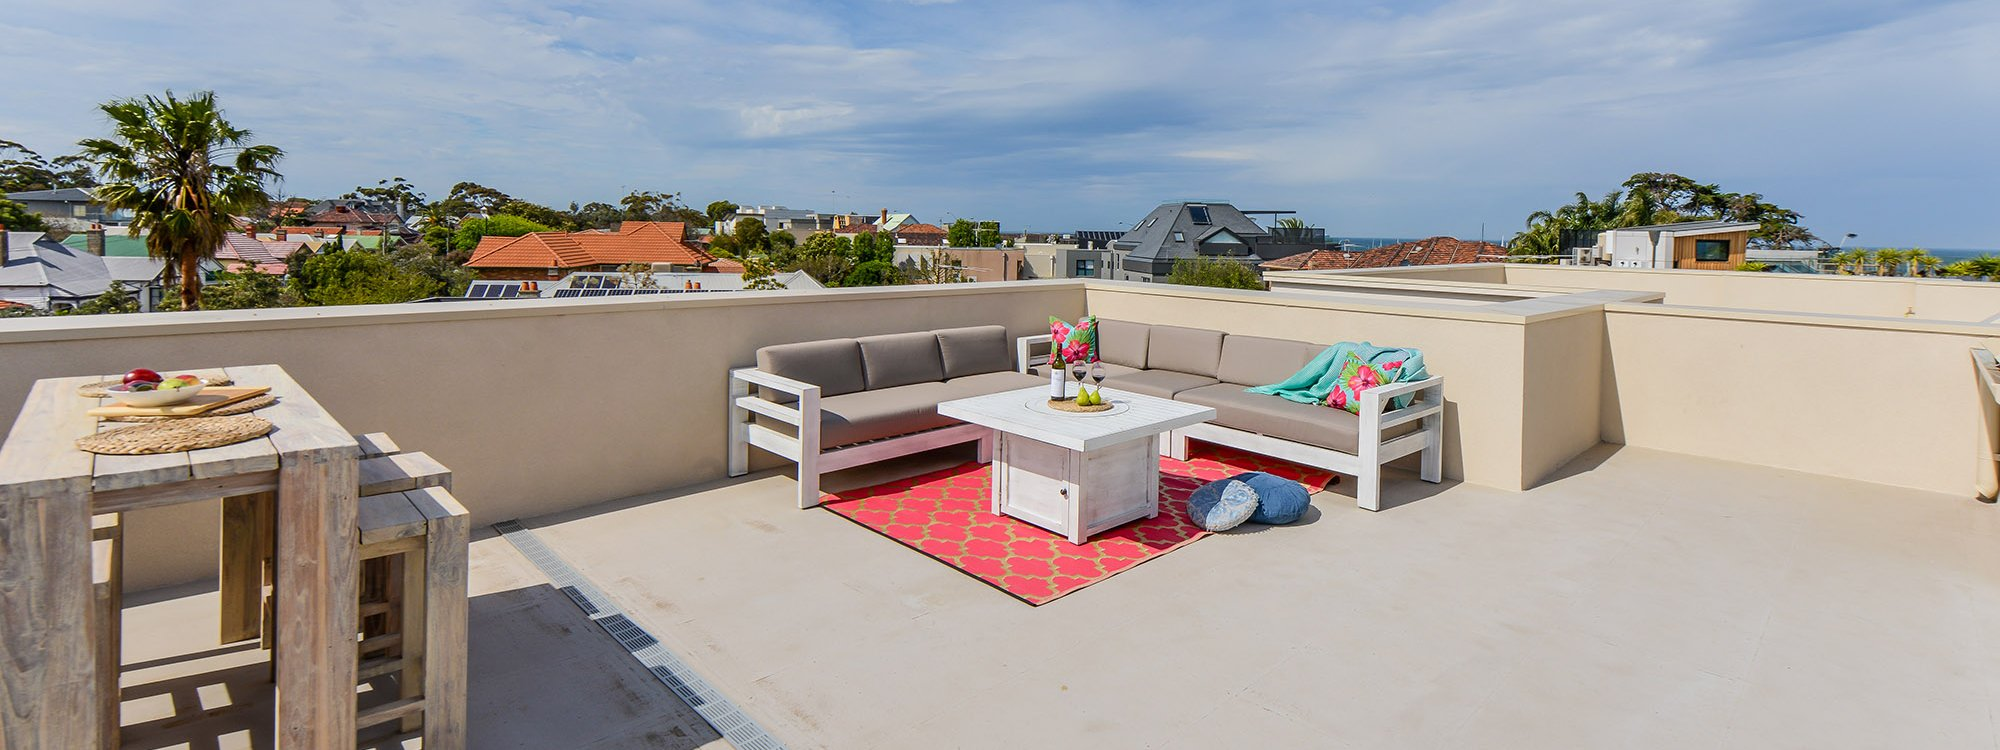 Hampton Lookout - Hampton - Roof Deck Lounge Area